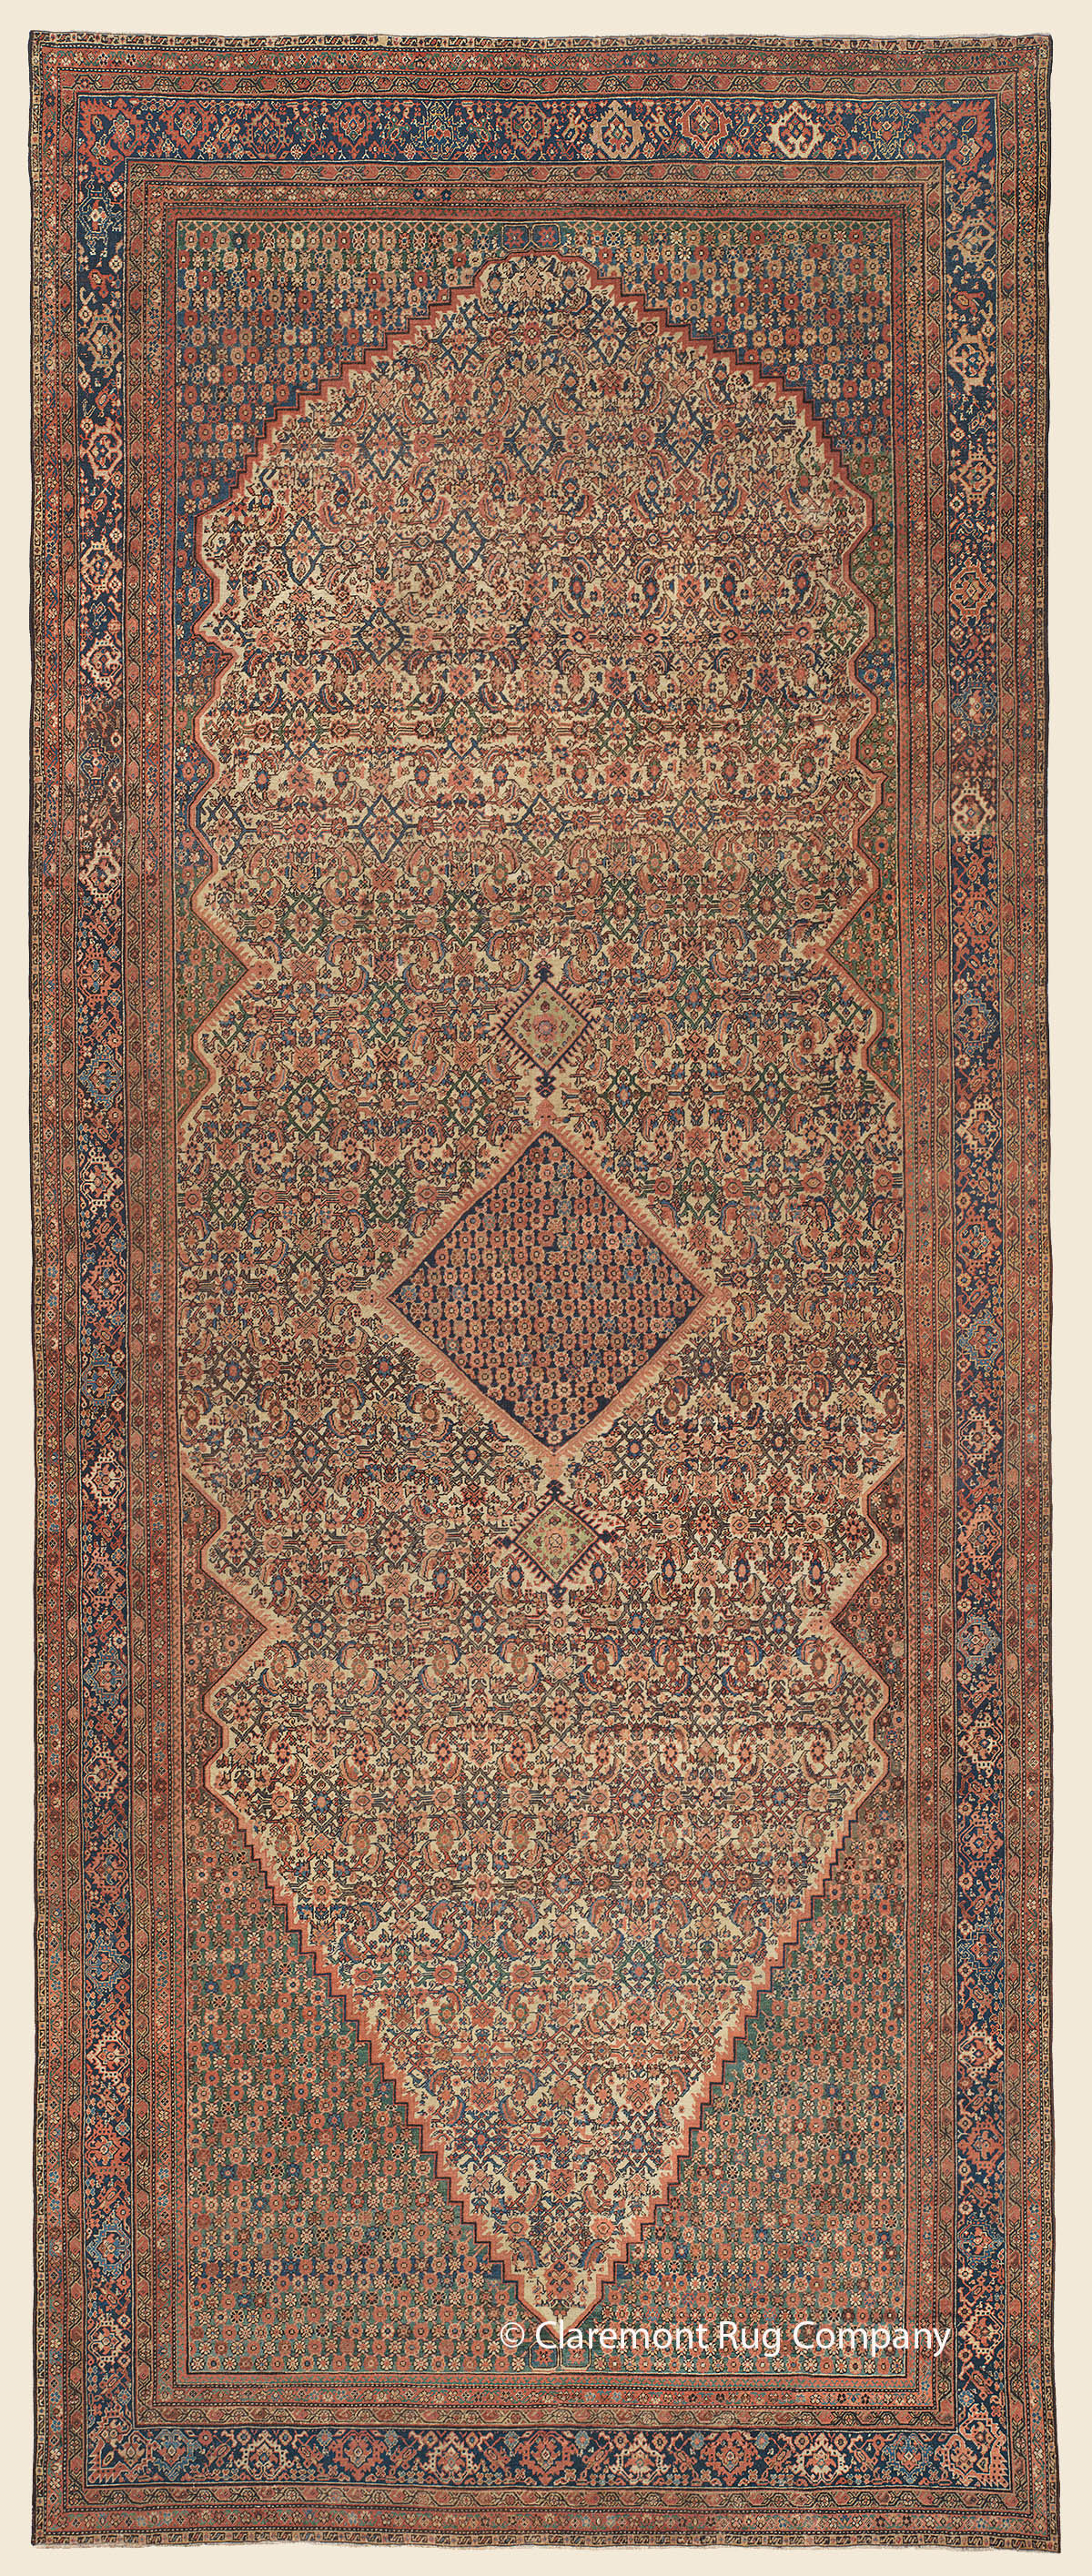 19th century Antique Persian Ferahan rug with diamond medallion filled with multicolored blossoms